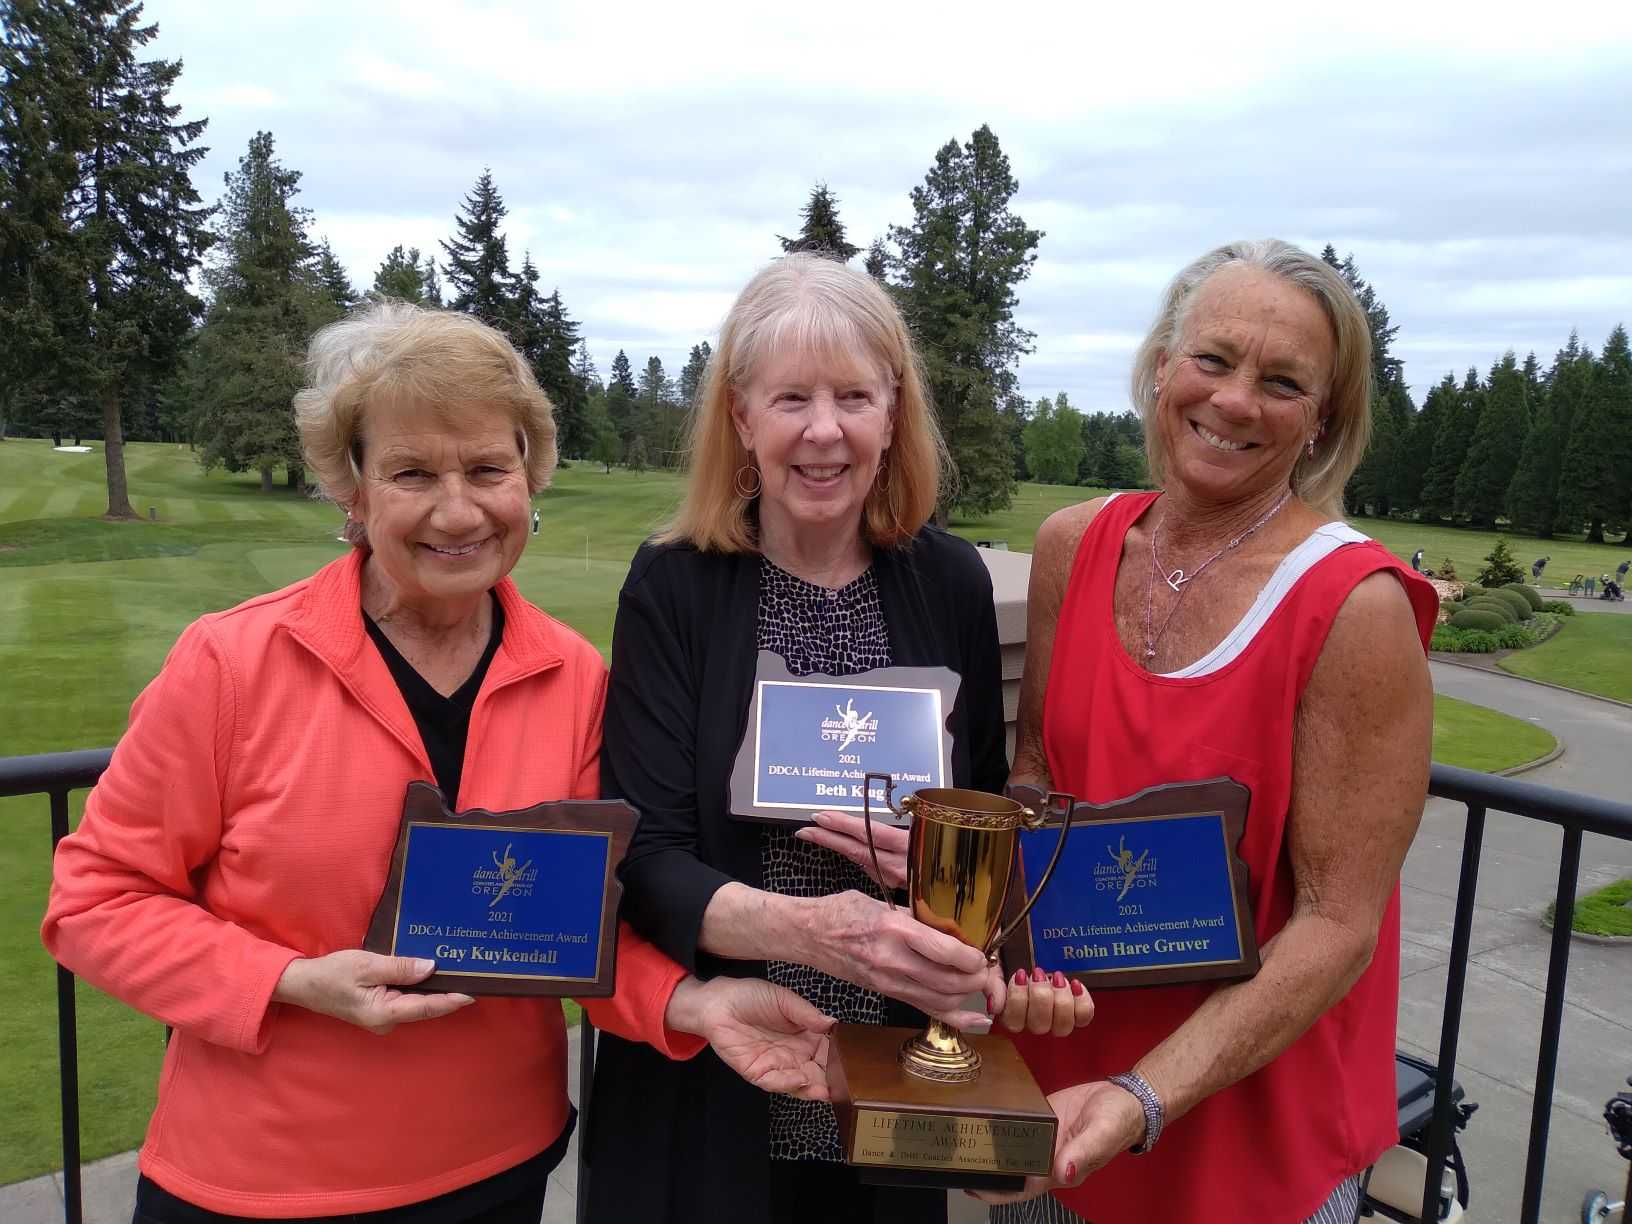 The DDCA recognized the contributions Robin Hare Gruver, Beth Klug and Gay Kuykendall made to Oregon high school dance.